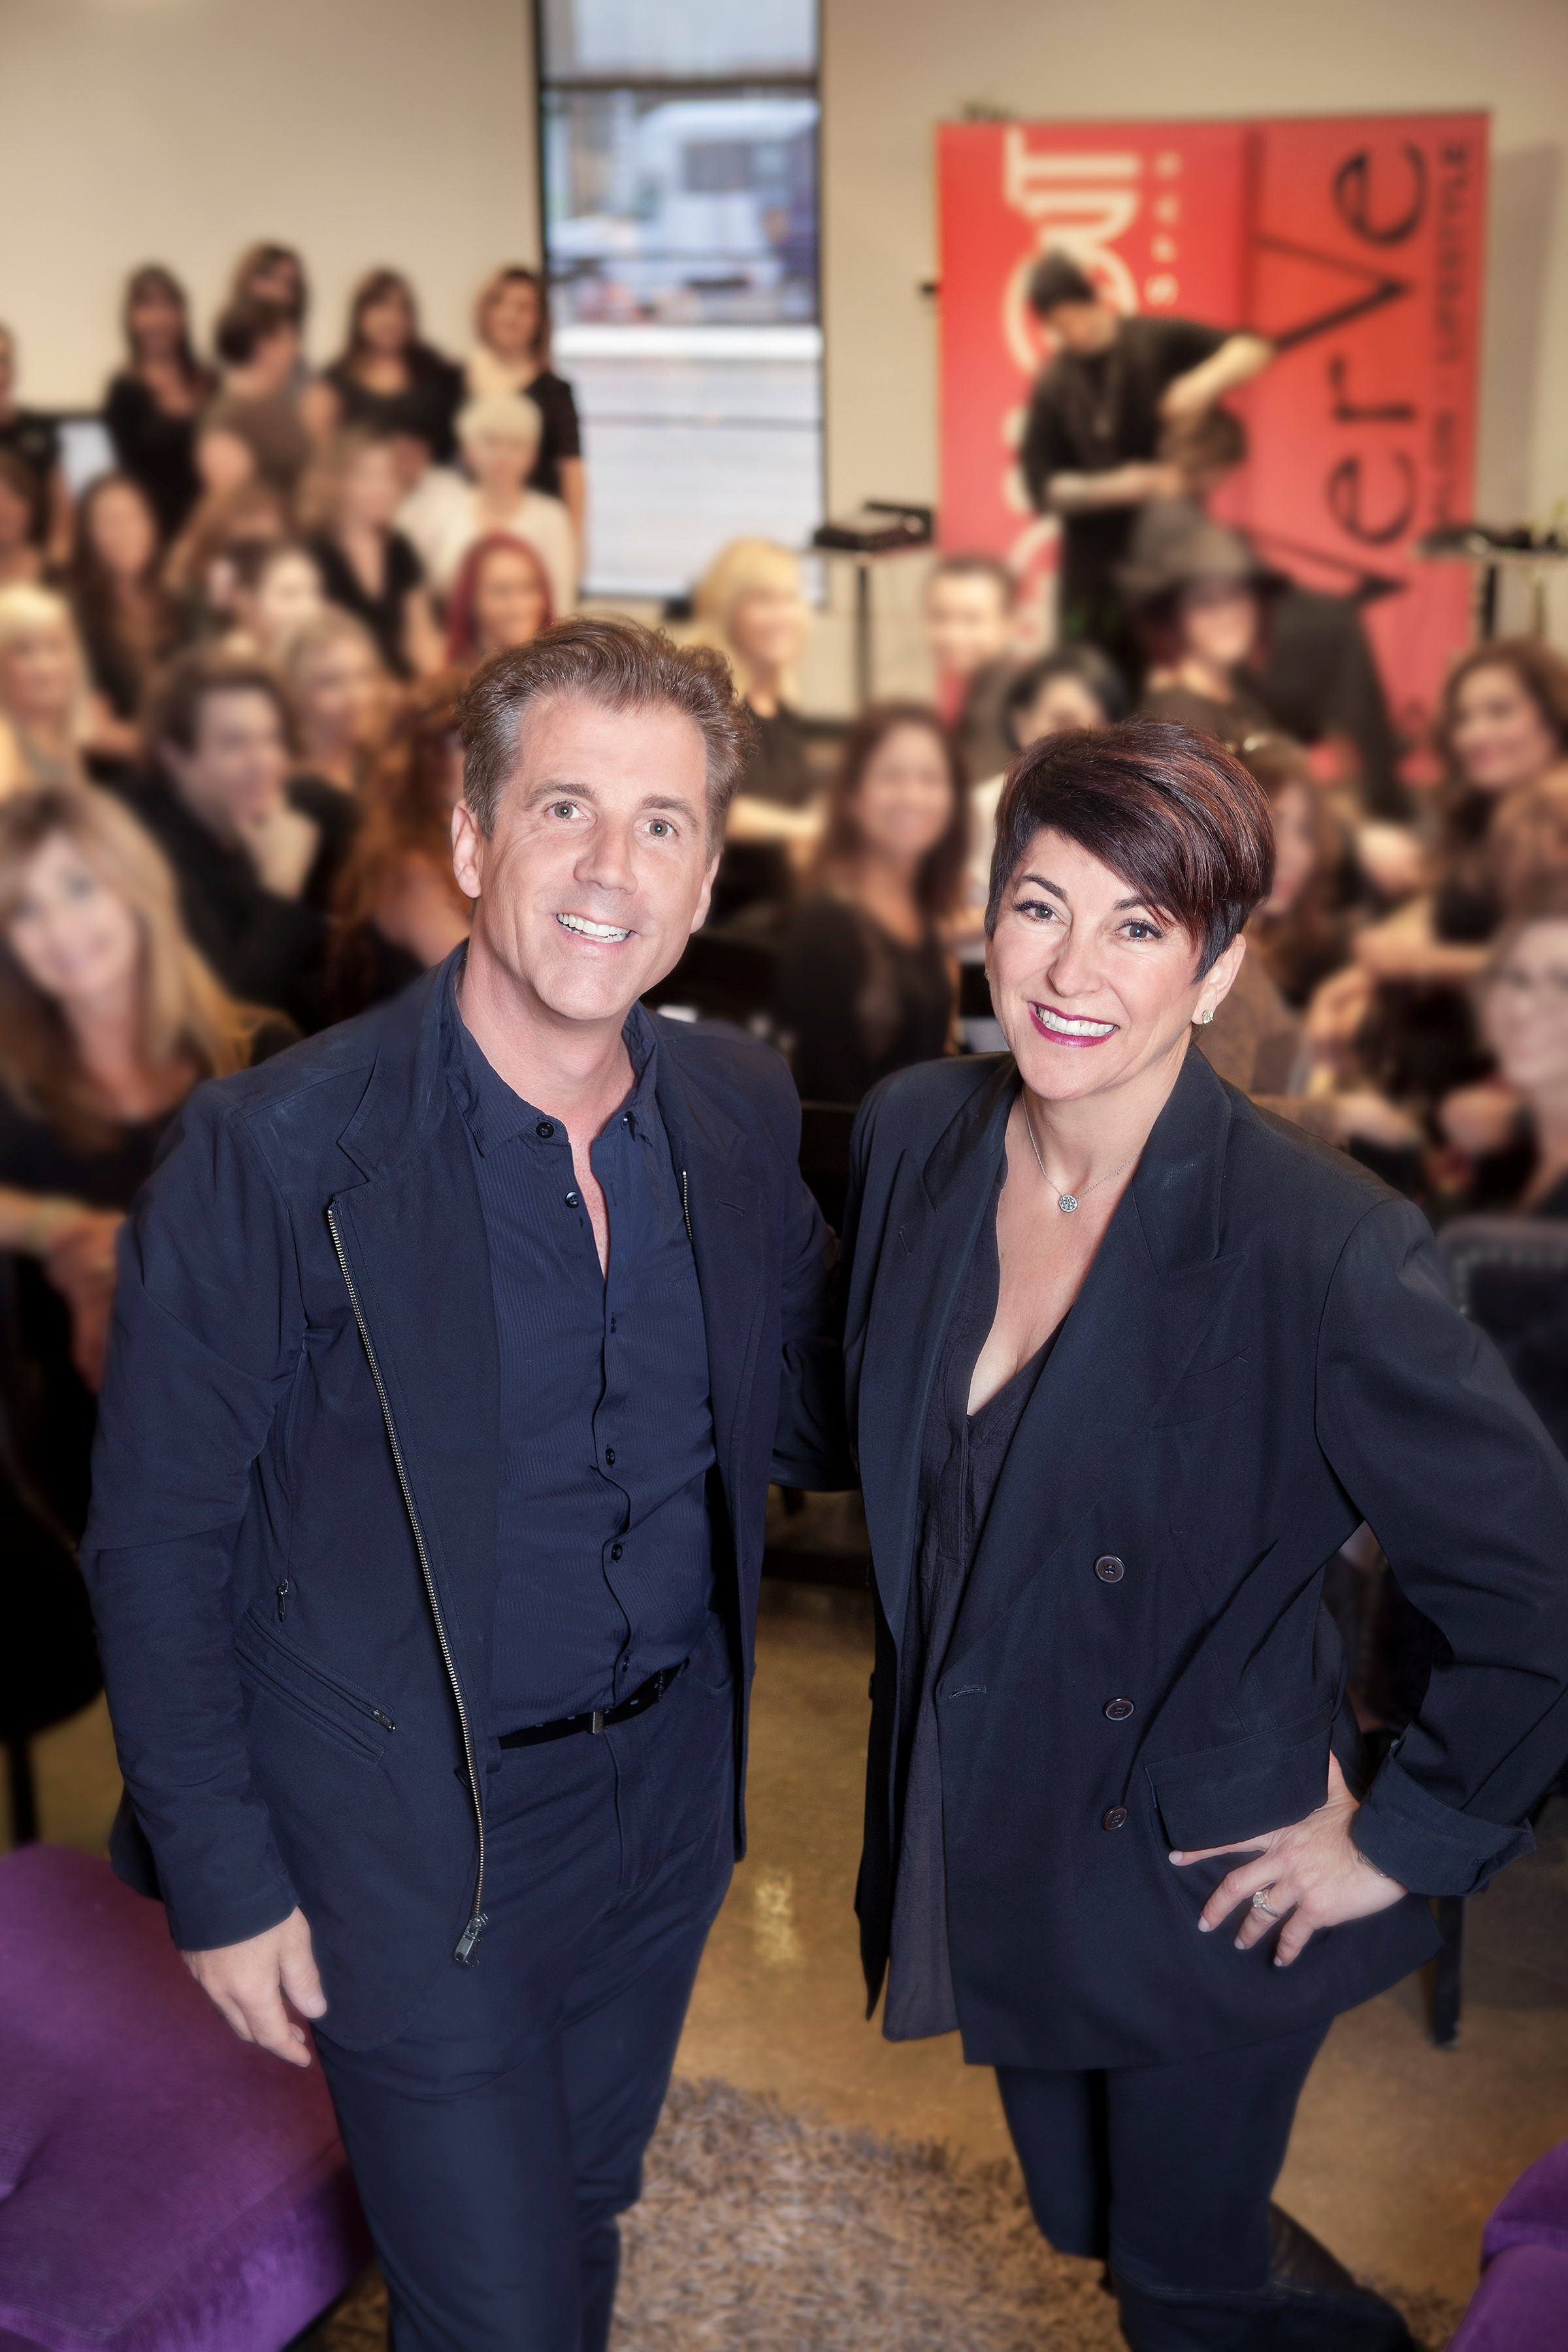 Frank and Jana Westerbeke, co-presidents of Gadabout SalonSpas in Tucson, will share their Word of the Year idea at Serious Business 2017 in New Orleans in January.